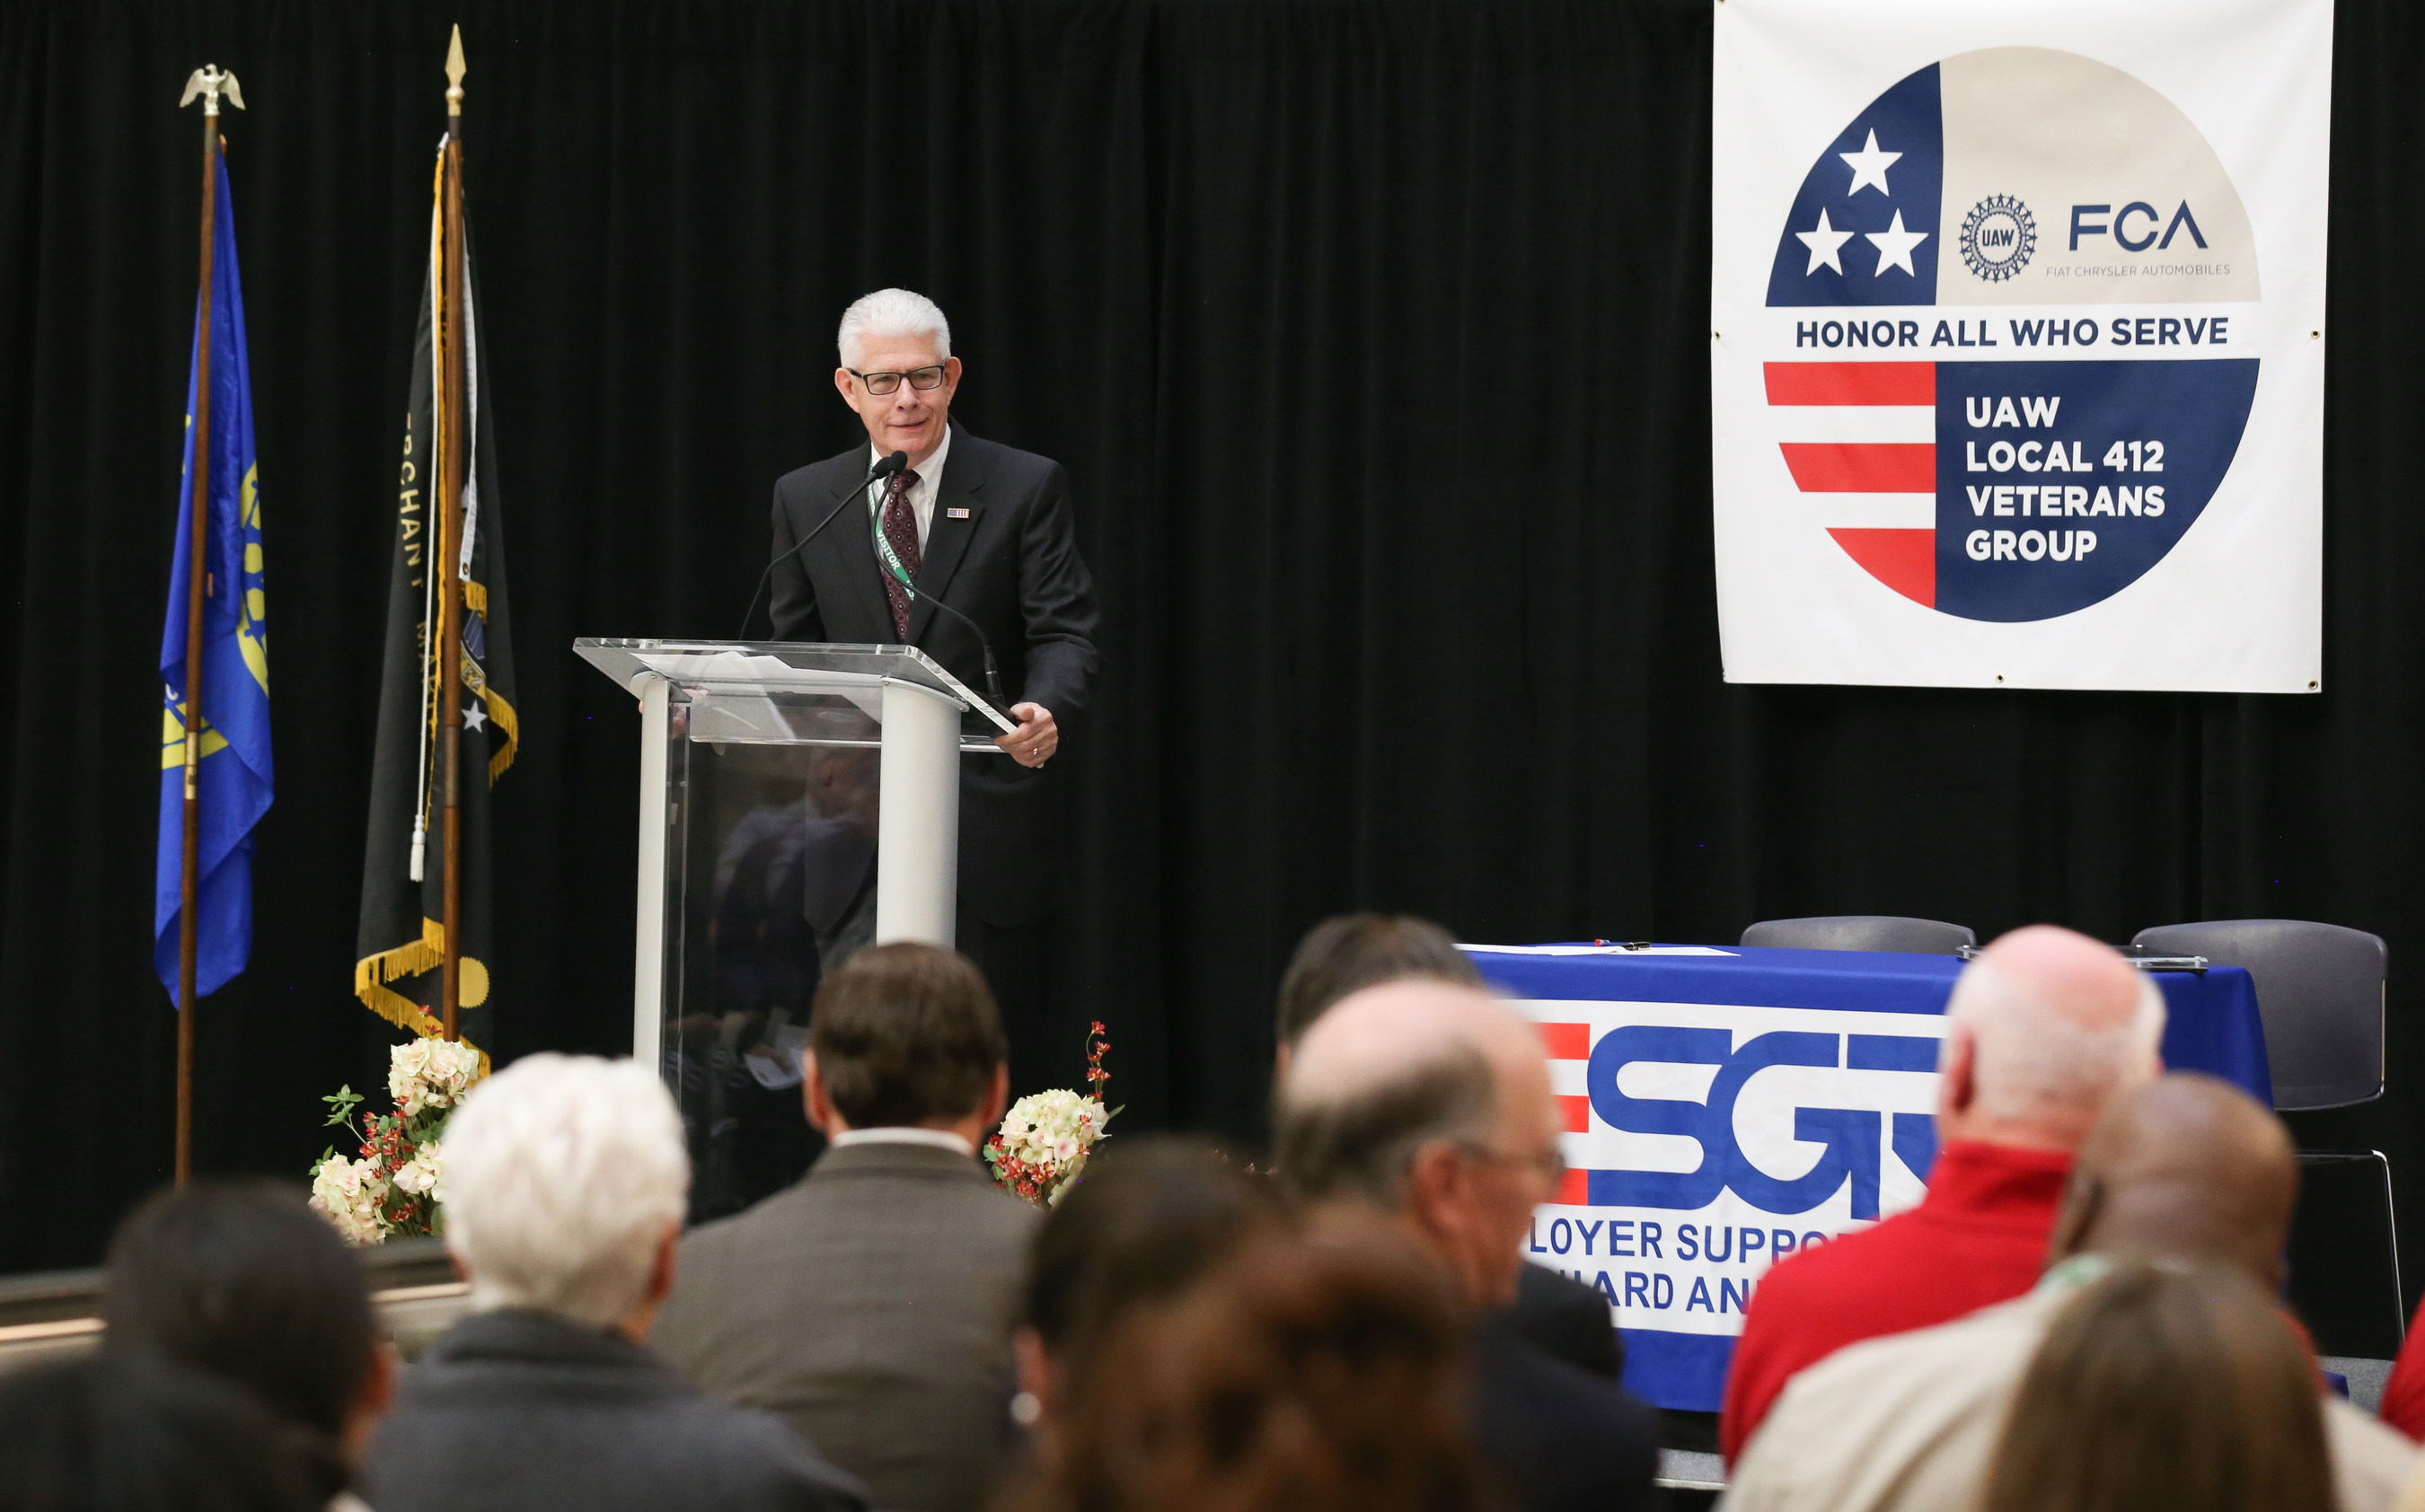 Tom Bullock of ESGR described the intent of the Statement of Support.